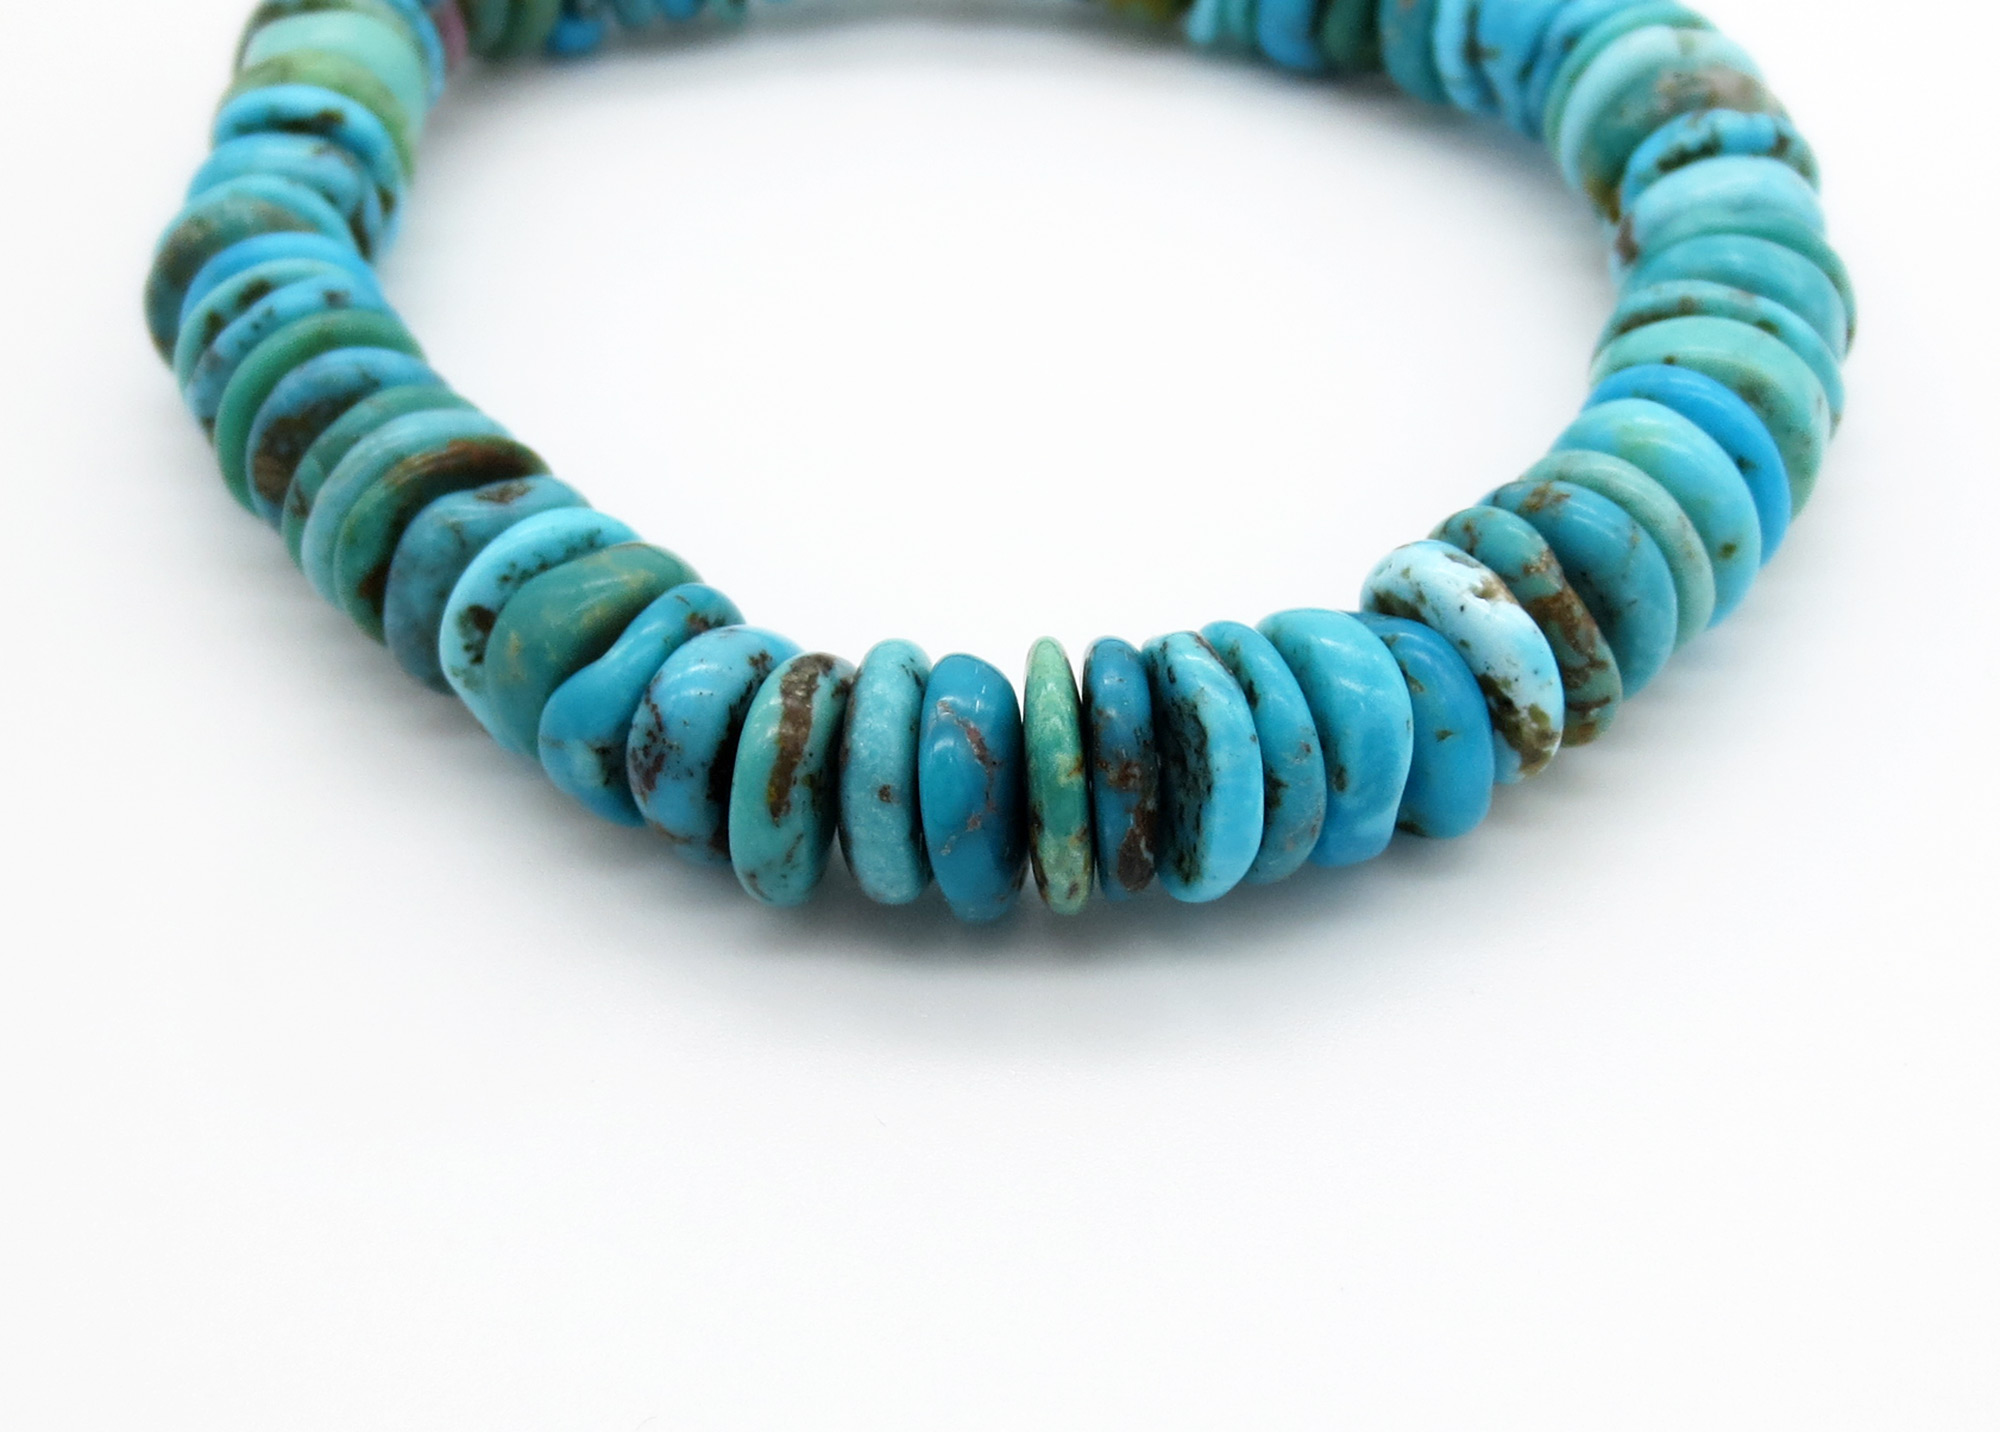 Image 2 of      Stretchy Turquoise Bracelet Native American Jewelry - 6268rio